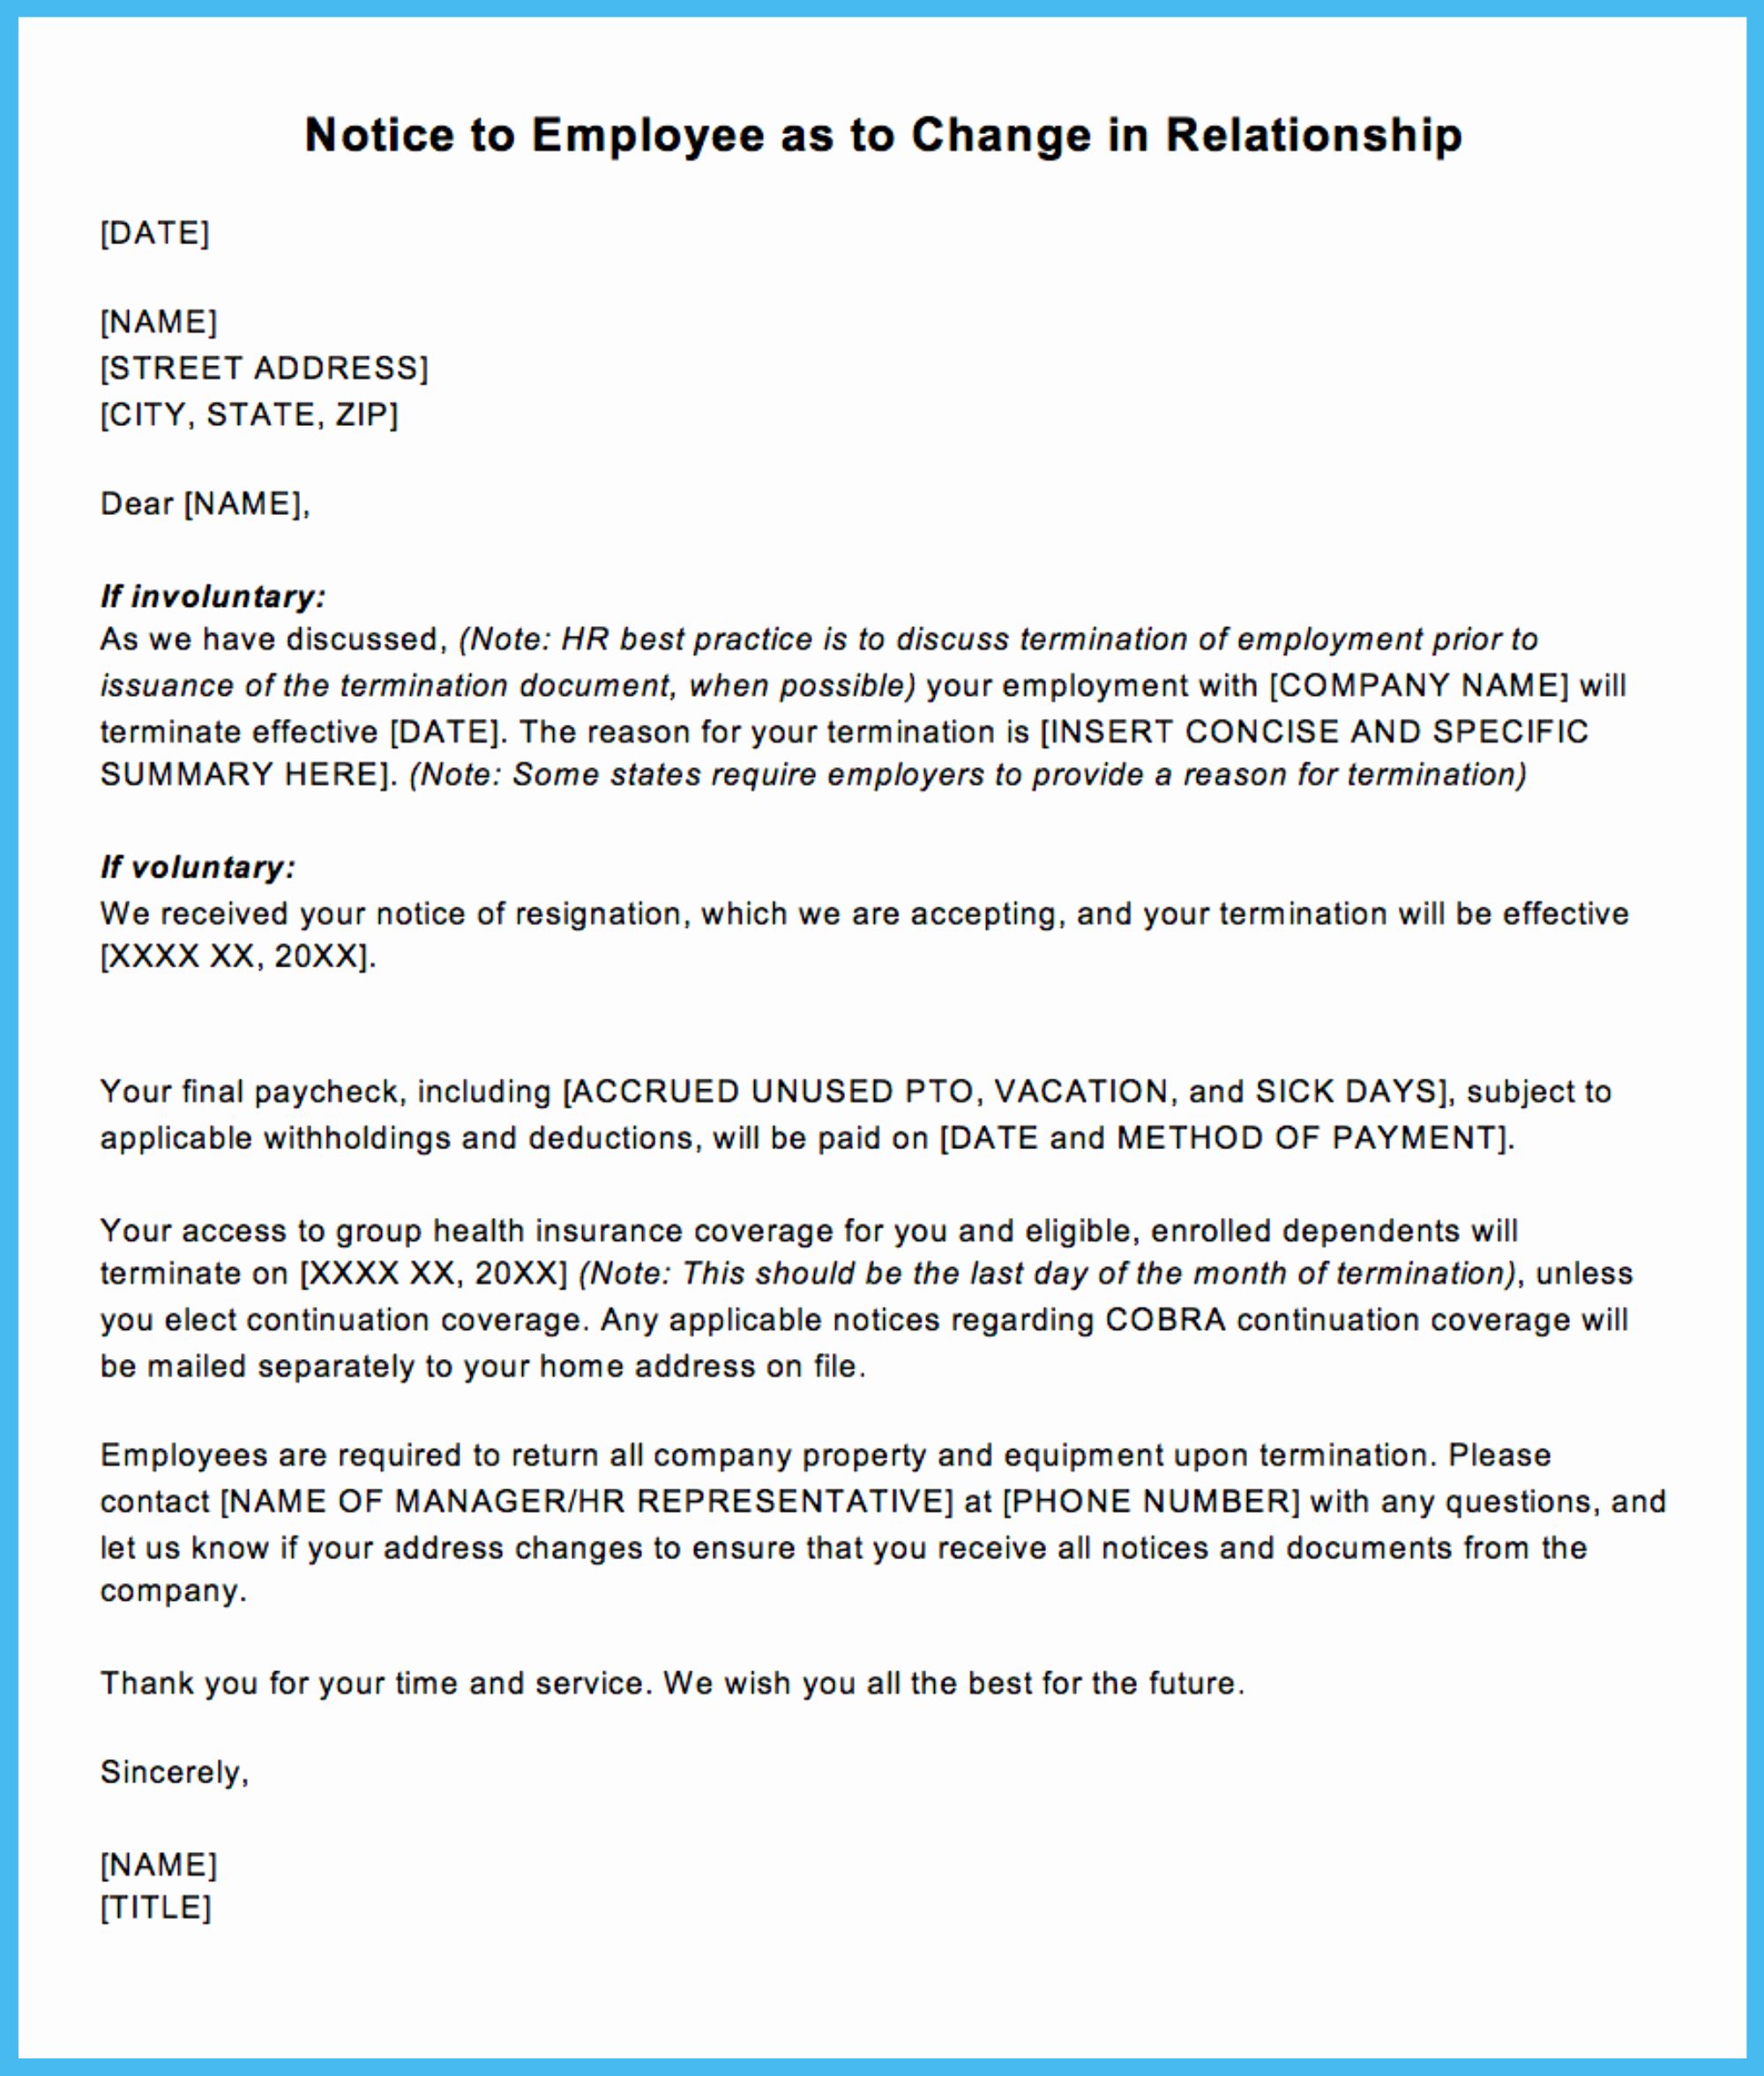 Client Termination Letter Template Beautiful Sample Termination Letter for Letting An Employee Go